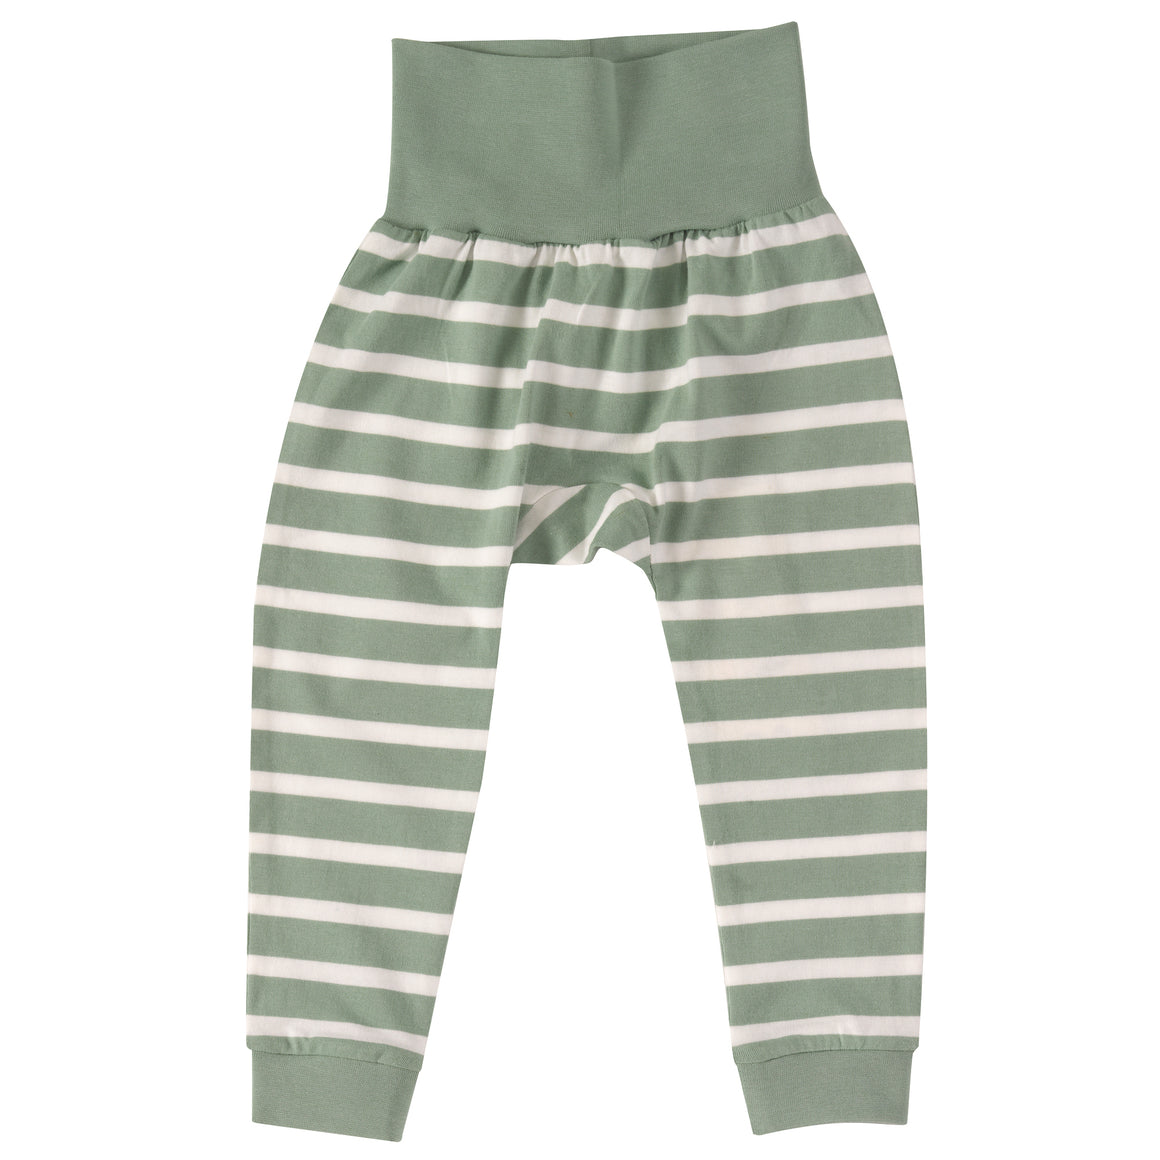 Baby Joggers in Green stripe